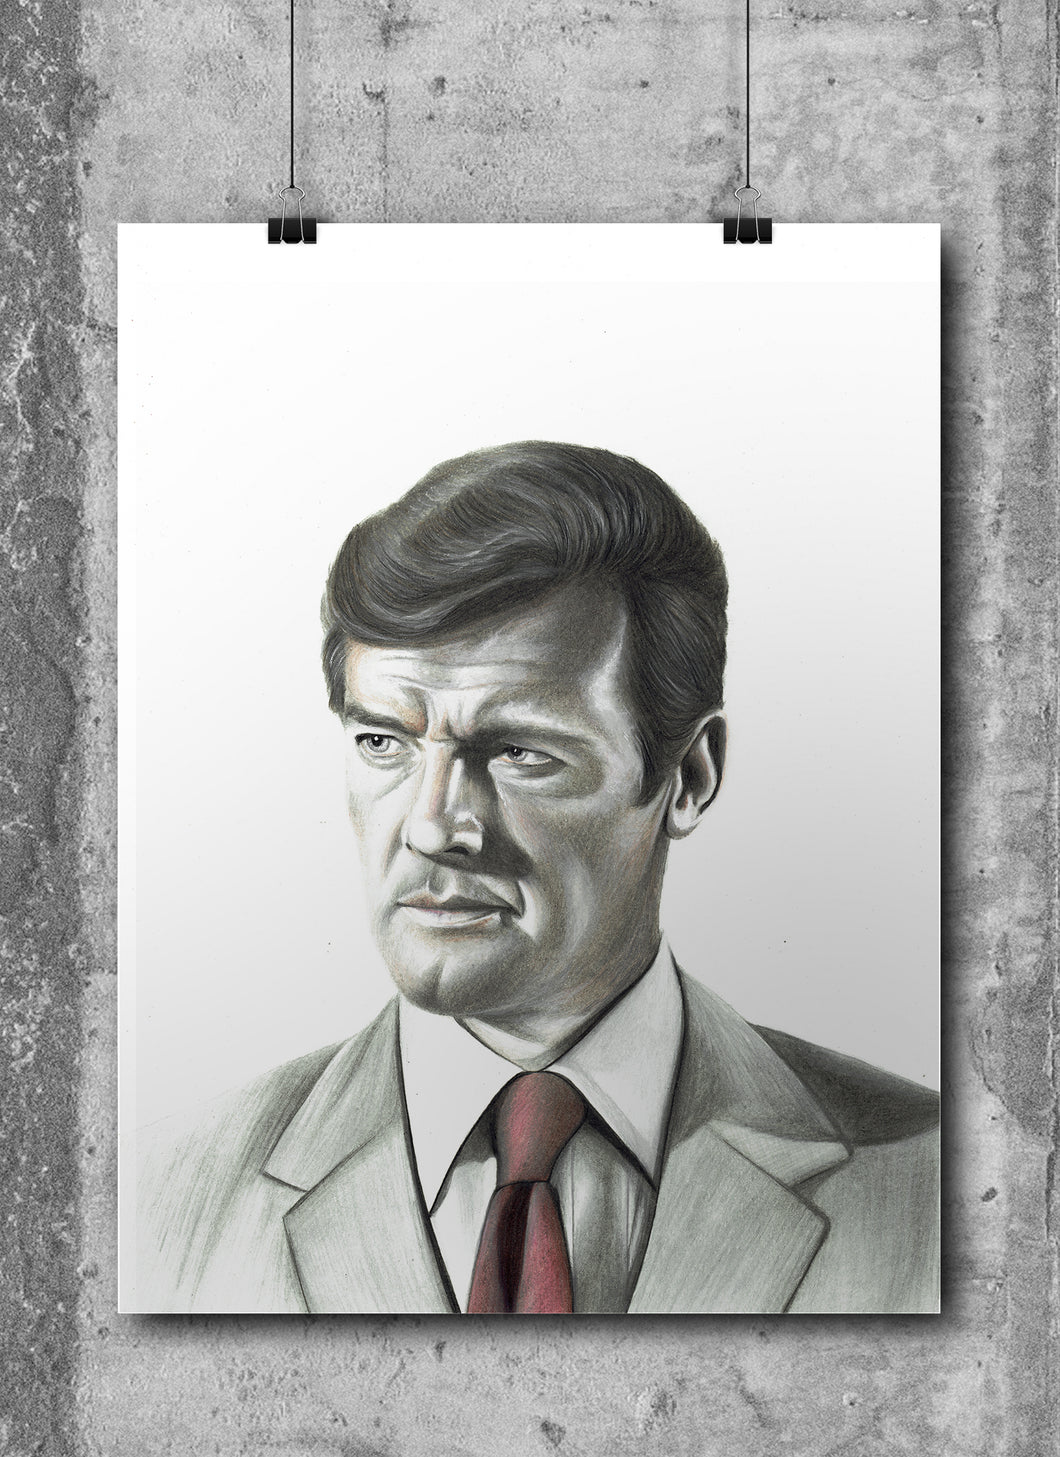 007 | ROGER MOORE